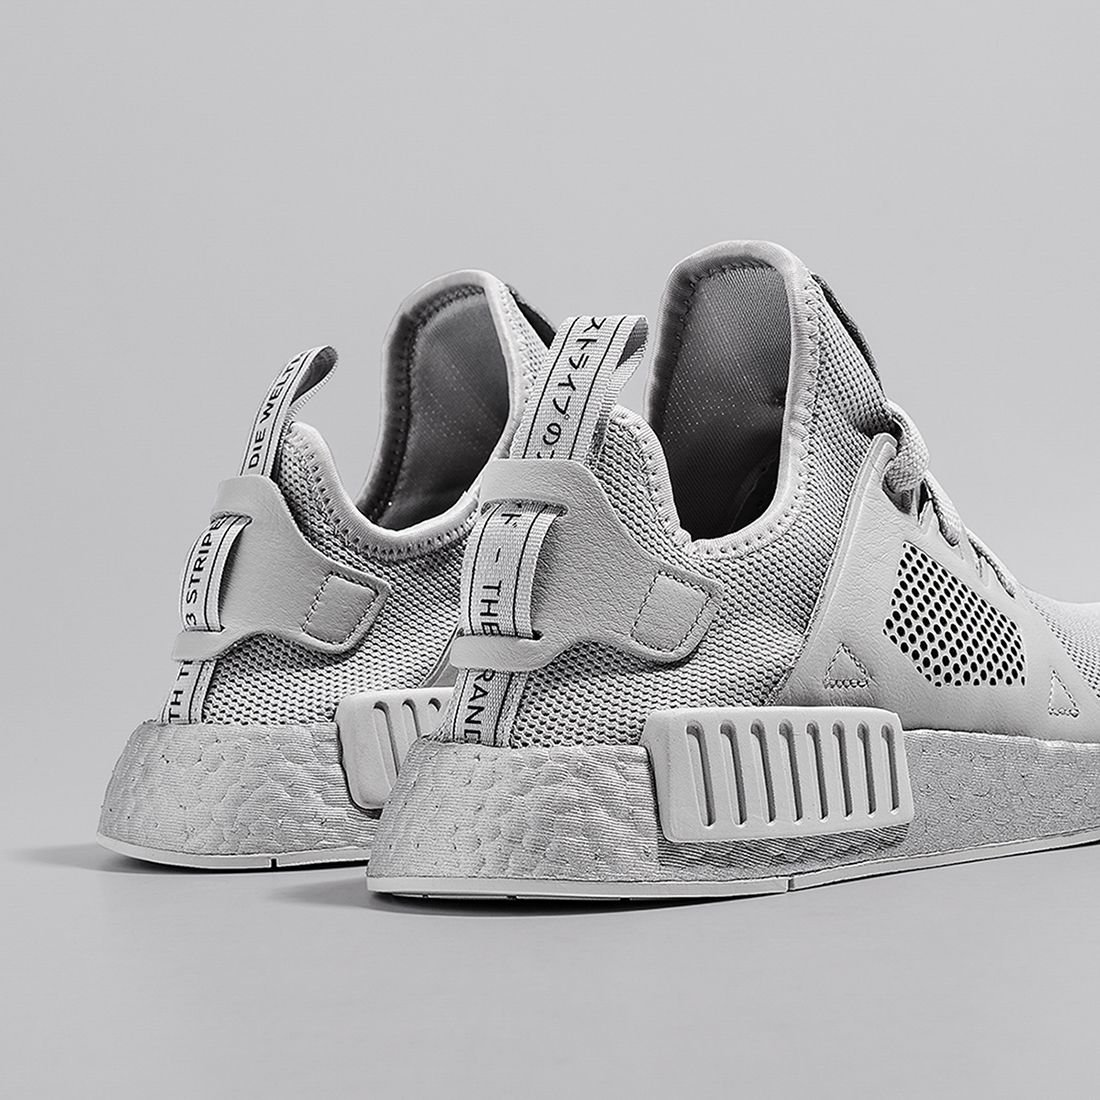 dddbec562383e Now Available  adidas NMD XR1